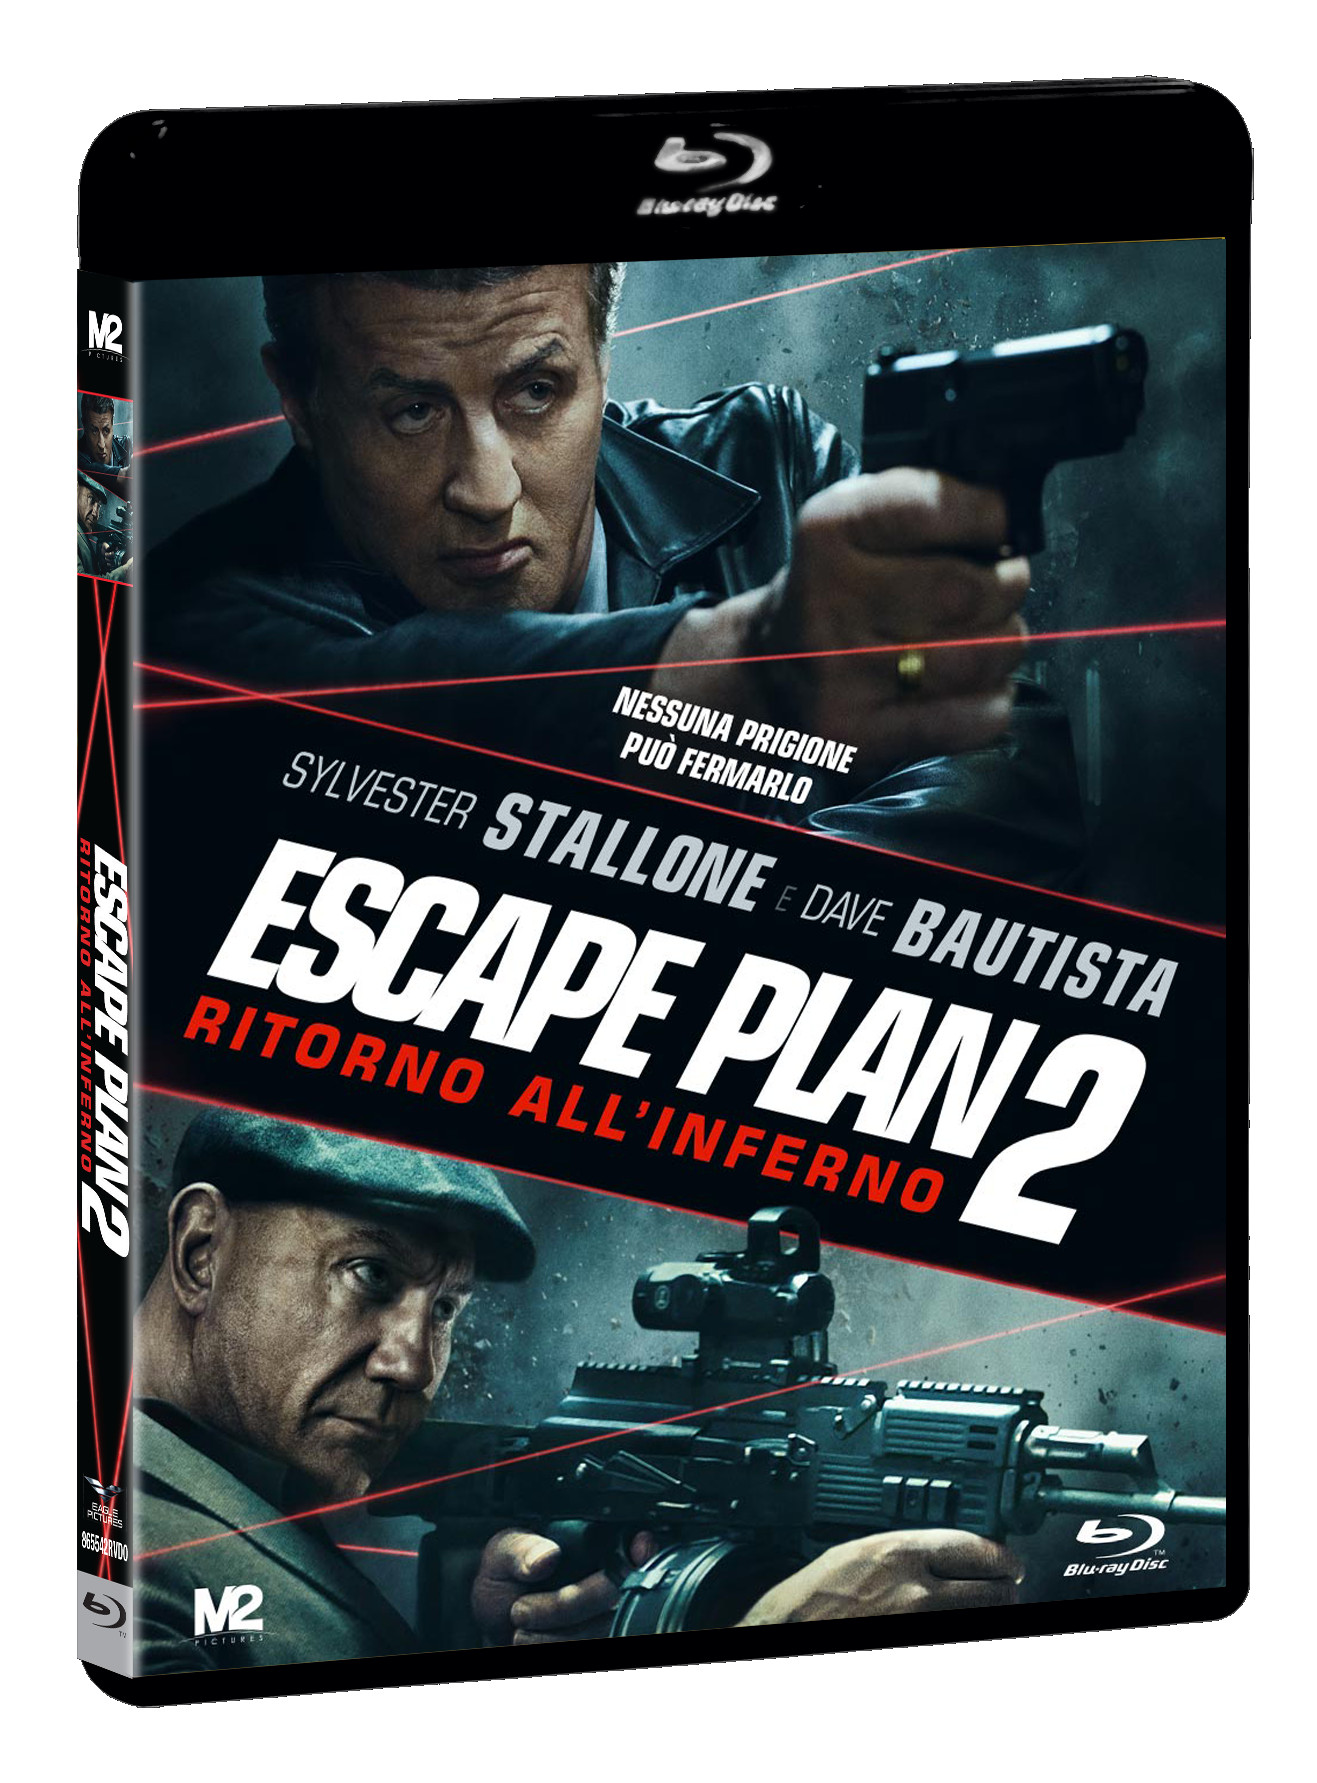 ESCAPE PLAN 2 - RITORNO ALL'INFERNO - BLU RAY